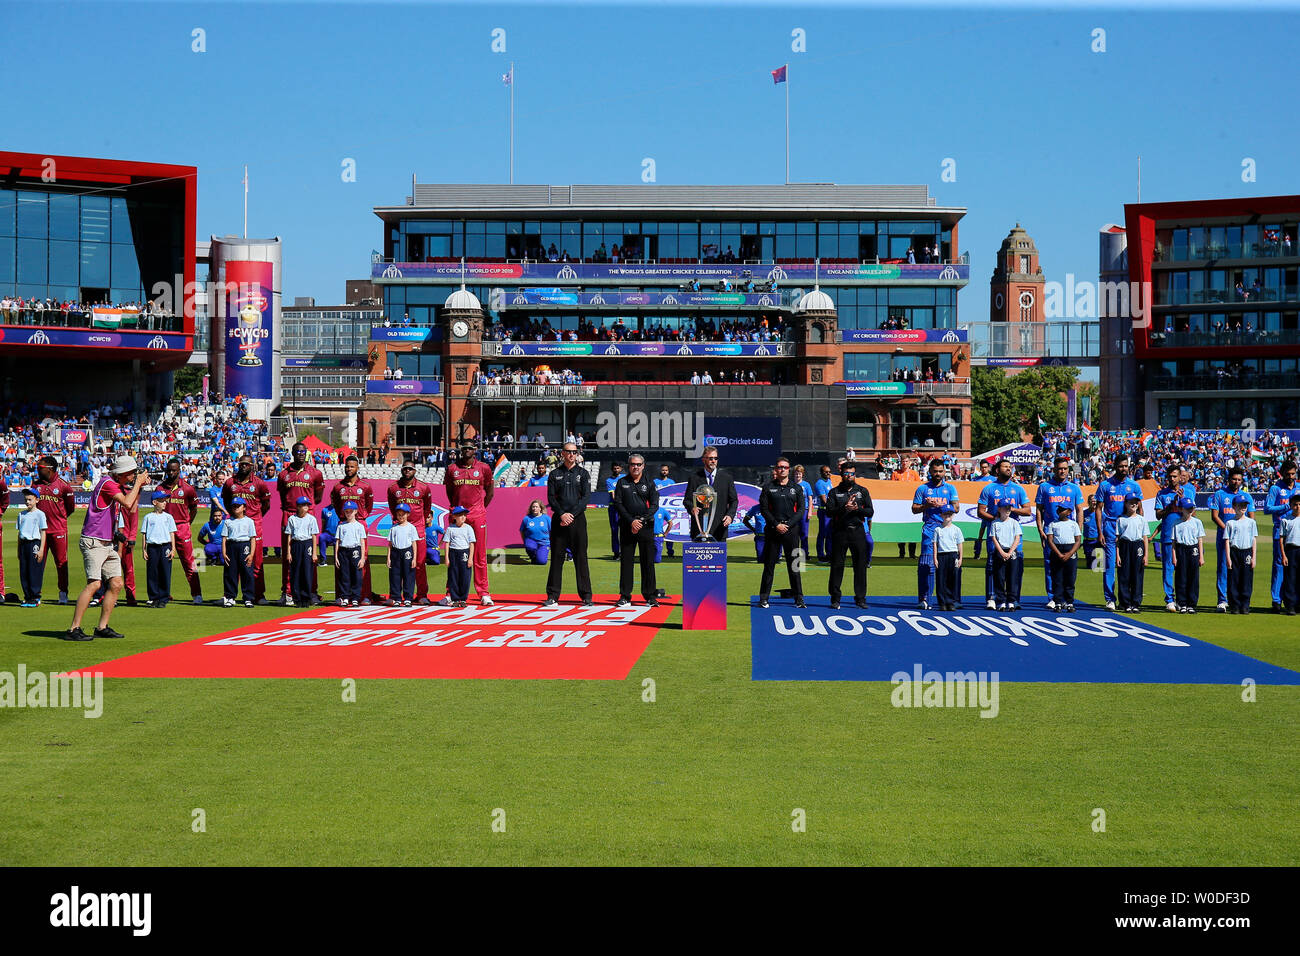 Old Trafford, Manchester, UK  27th June, 2019  ICC World Cup cricket